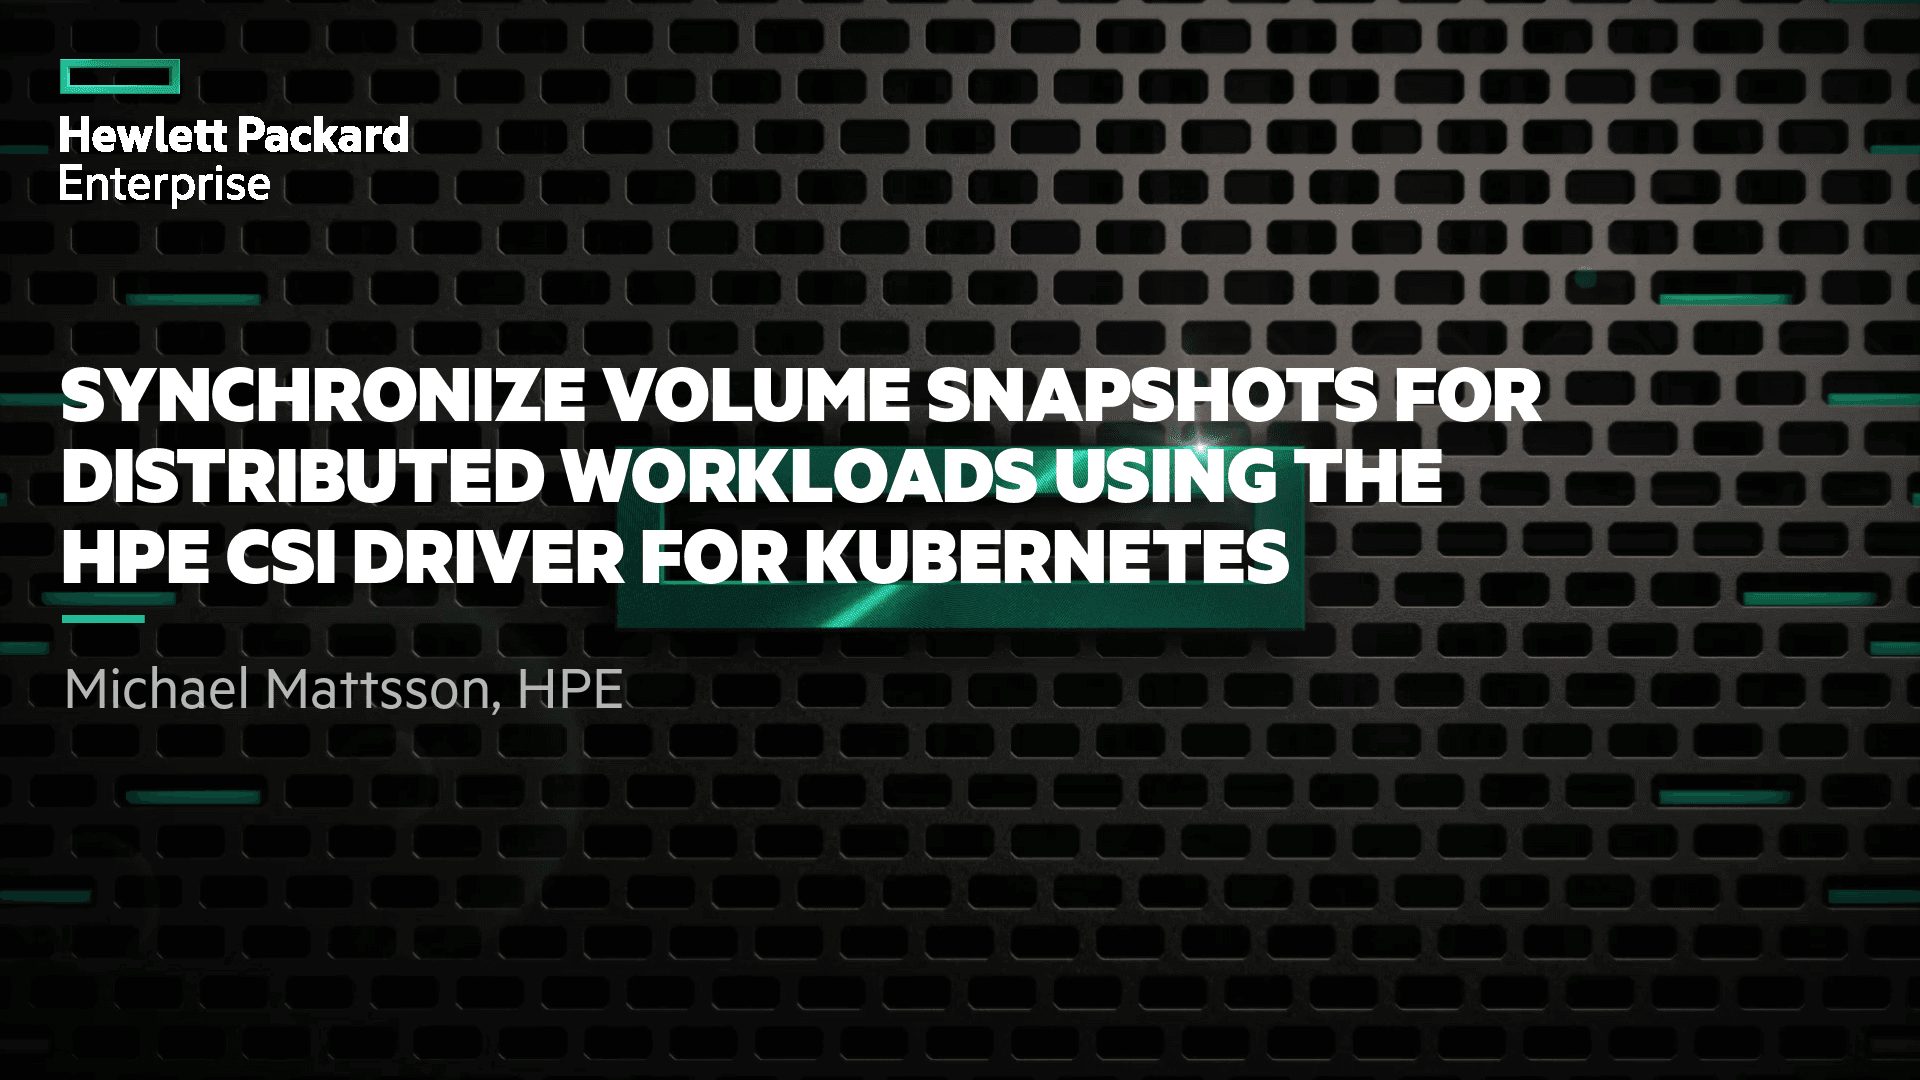 Synchronize Volume Snapshots for Distributed Workloads using the HPE CSI Driver for Kubernetes